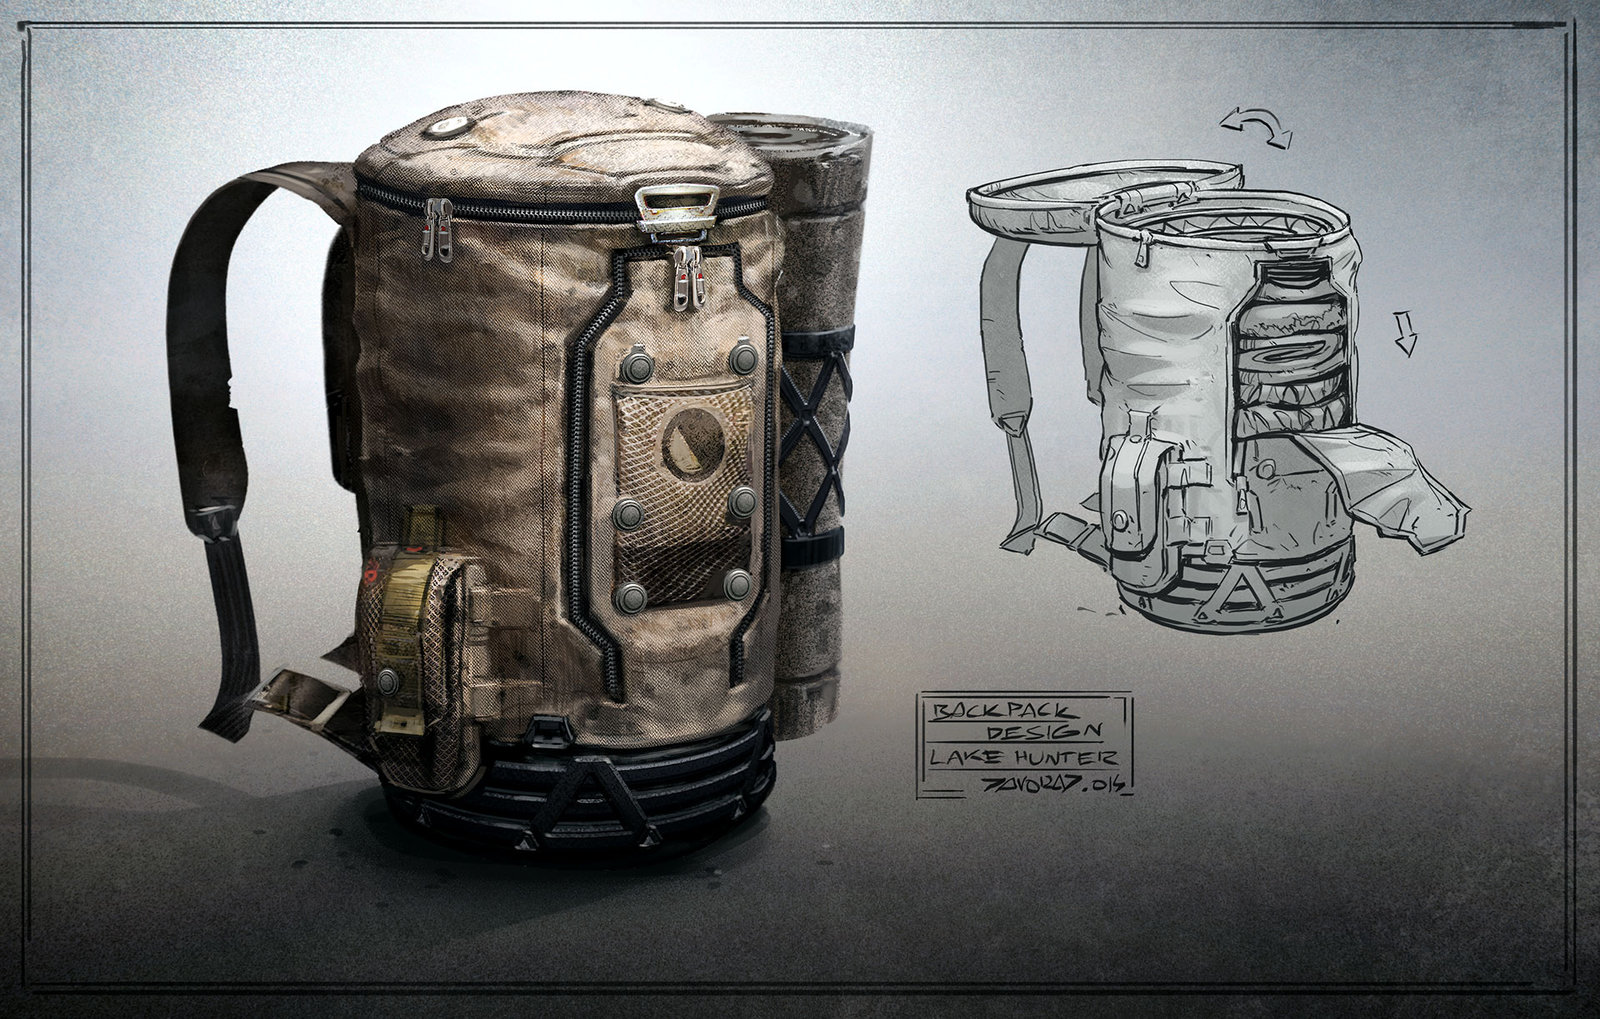 Cool Backpack Designs CupdyChw